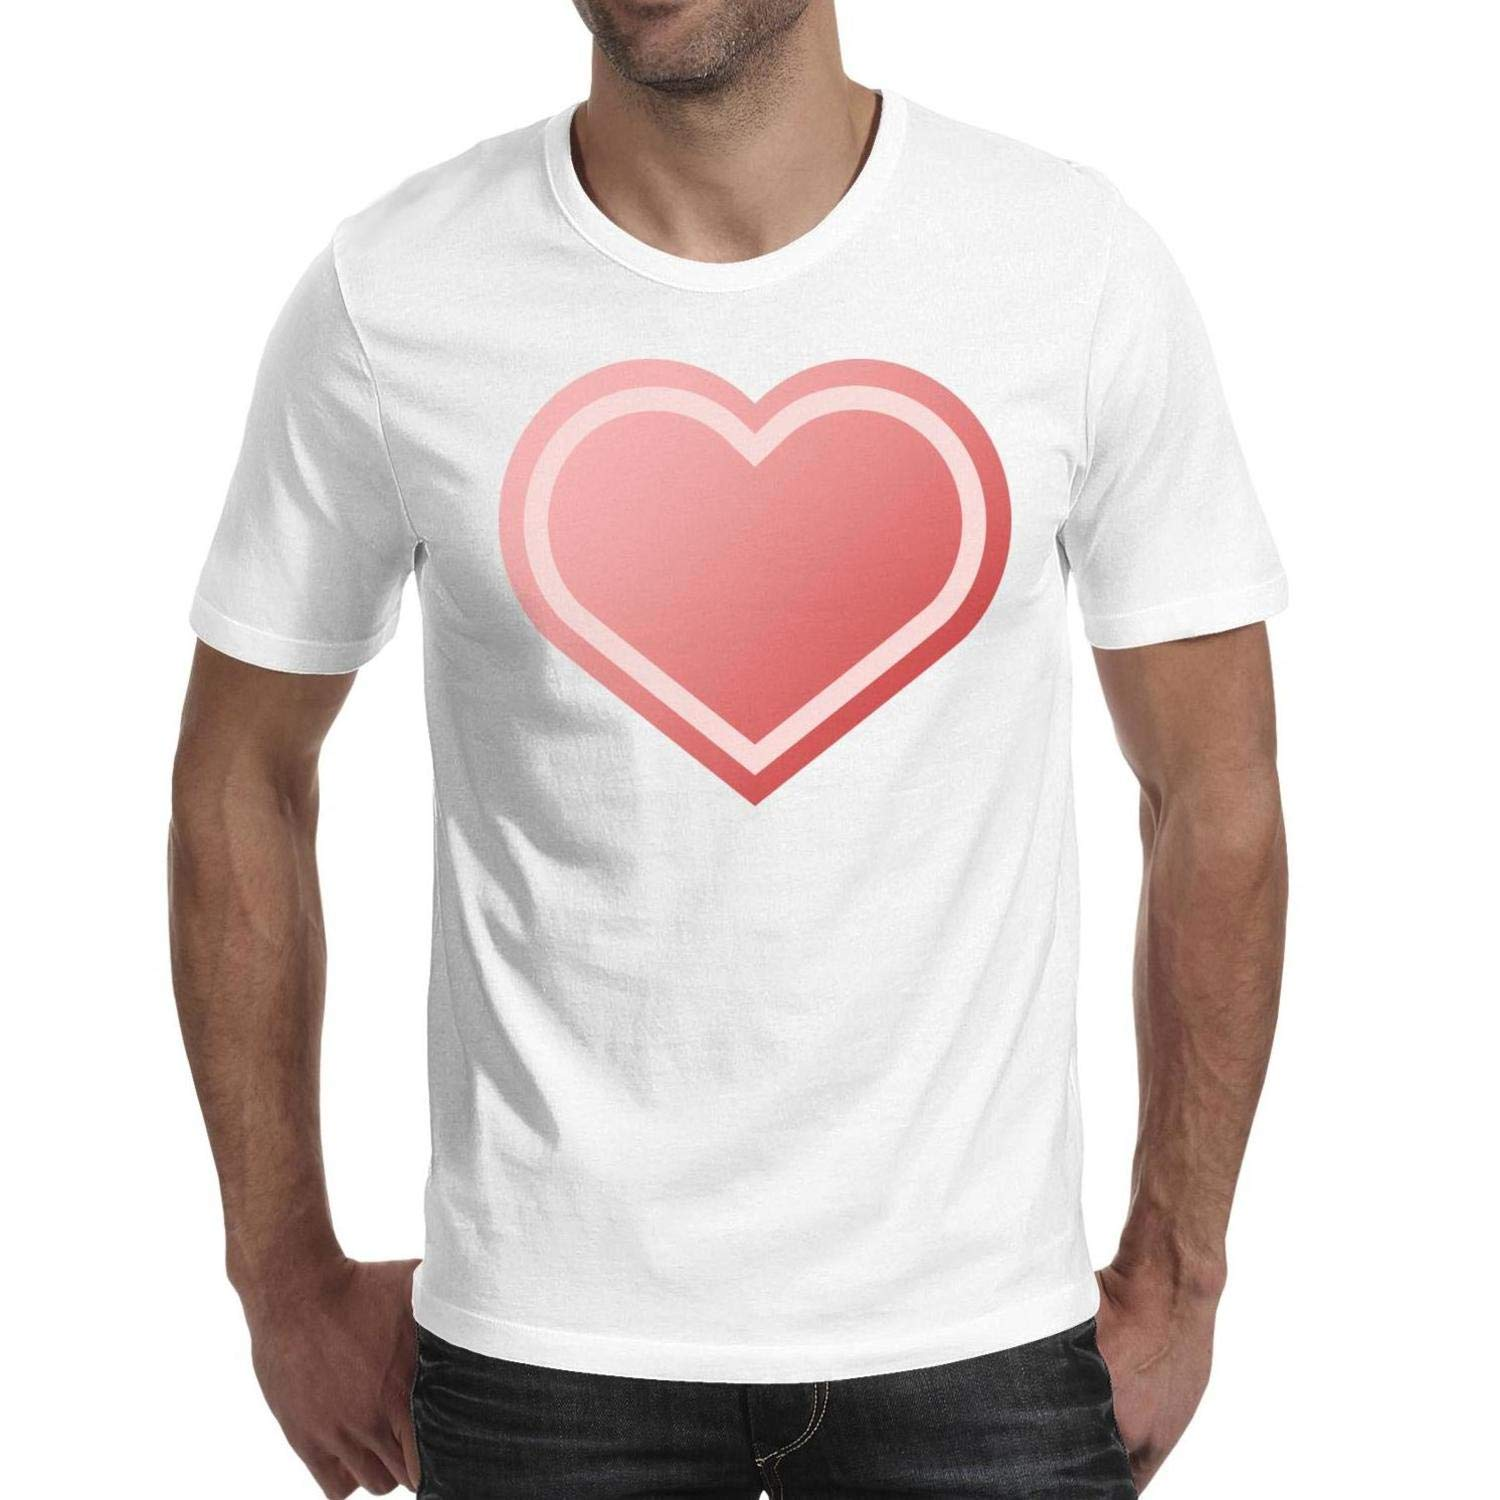 Knit Heart Logo Mens Clothing Shirt T-Shirt Cotton,Cable,Slim-Fit,Crew Neck,Solid,Graphic,Novelty} Design